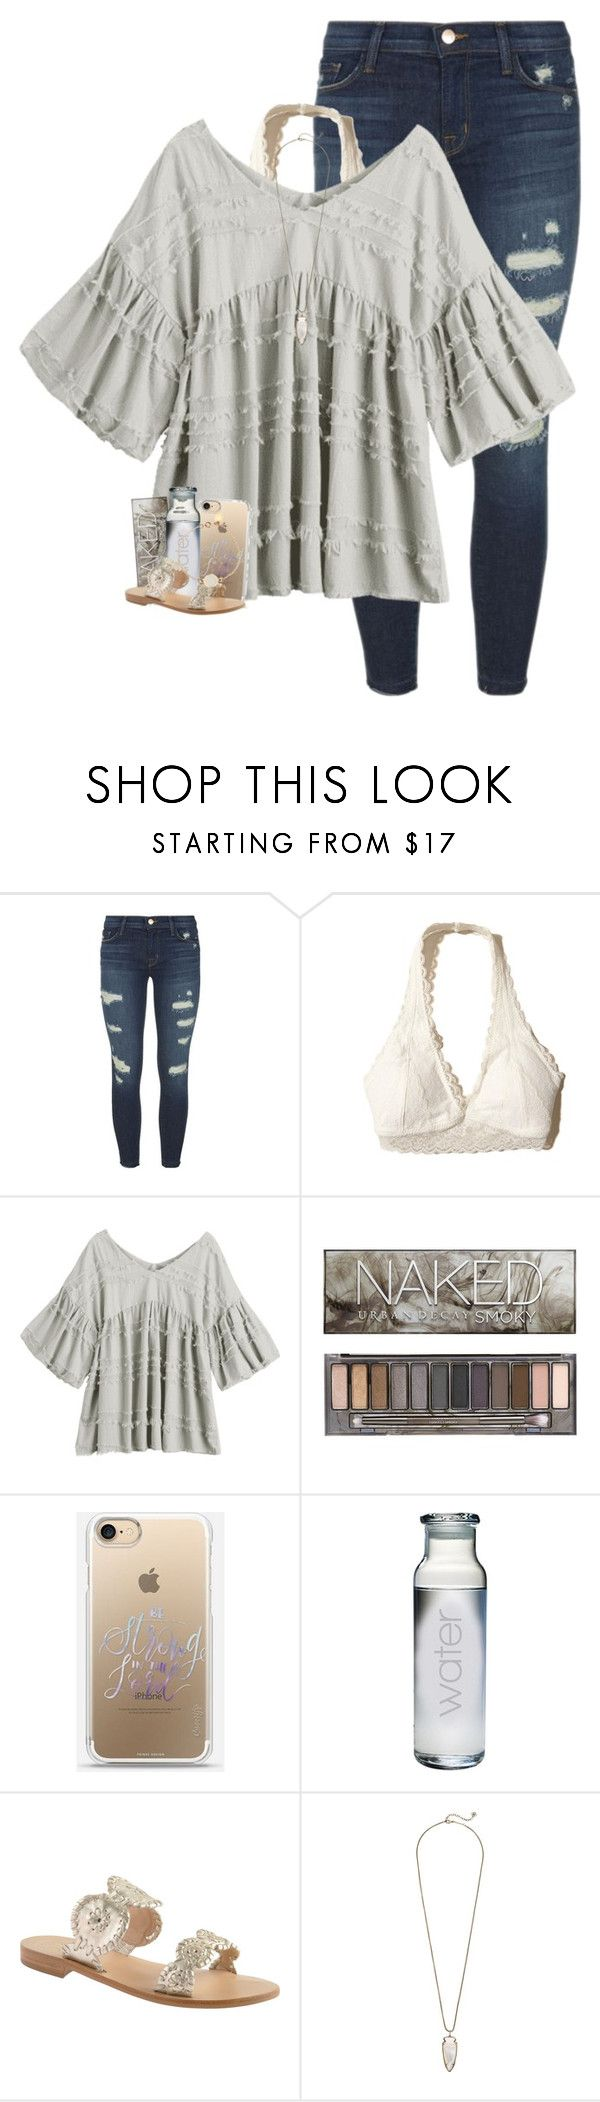 """""""so crazy how you say you wanna stay"""" by oliviajordyn ❤ liked on Polyvore featuring J Brand, Hollister Co., Urban Decay, Susquehanna Glass, Jack Rogers, Kendra Scott and Marc by Marc Jacobs"""